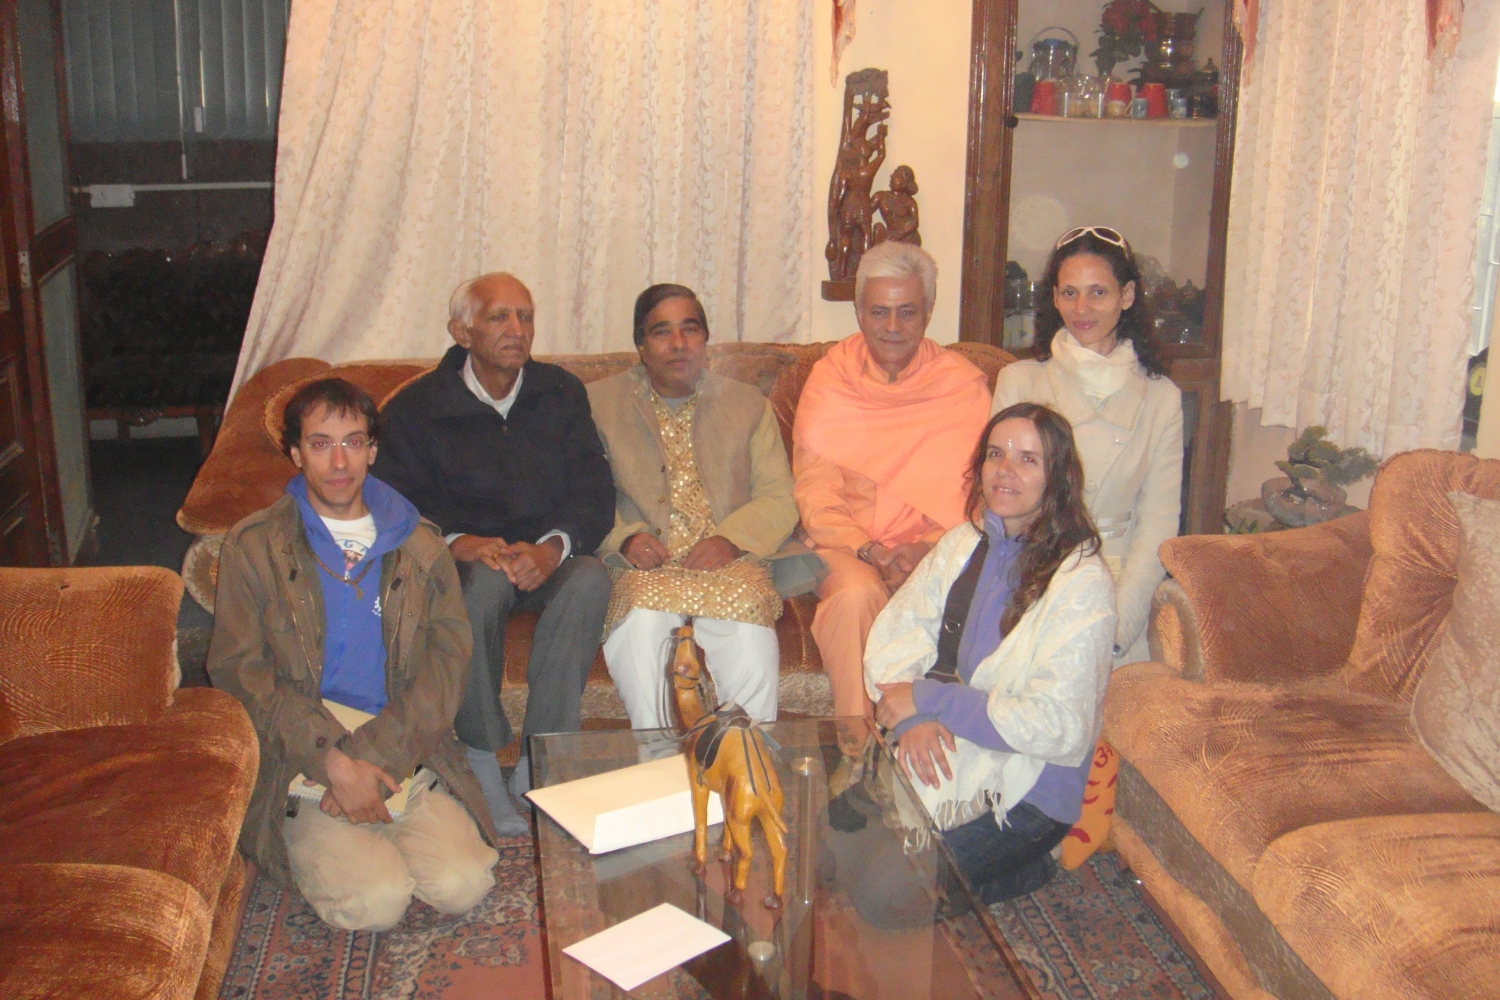 Meeting of H.H. Jagat Guru Amrta Súryánanda Mahá Rája with Dr. Gopalji - Dillí, India - 2010, January